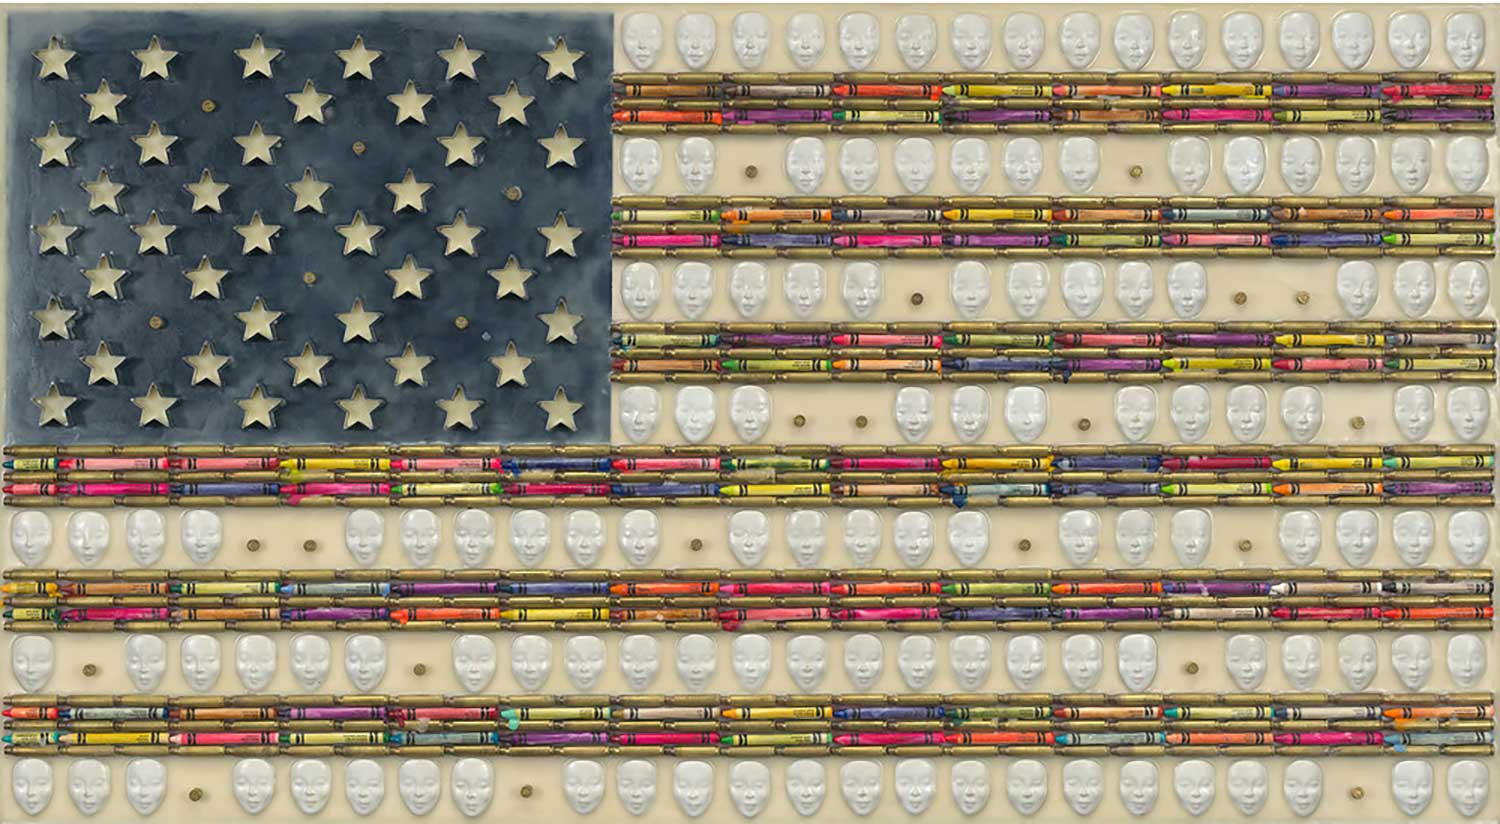 "Newtown 26, 2015, 26X48"" Ceramic faces, crayons, semi-automatic brass shells, aluminum cookie cutters, and encaustic on board."